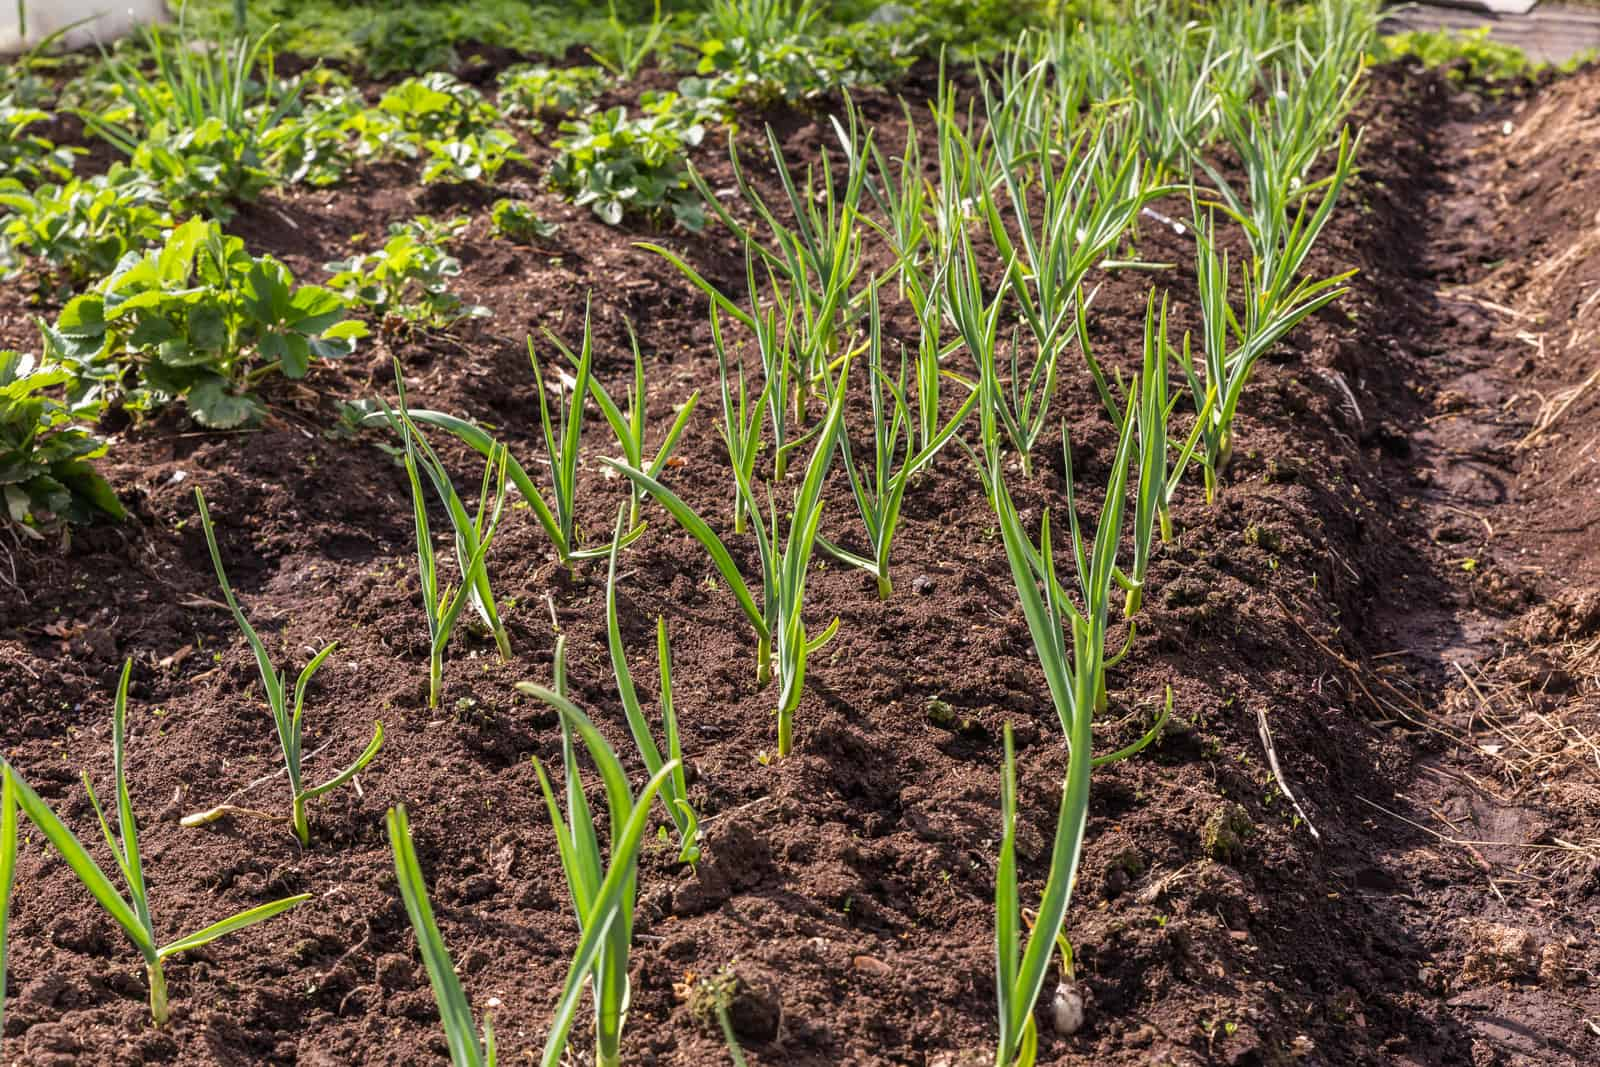 Garlic in planting beds